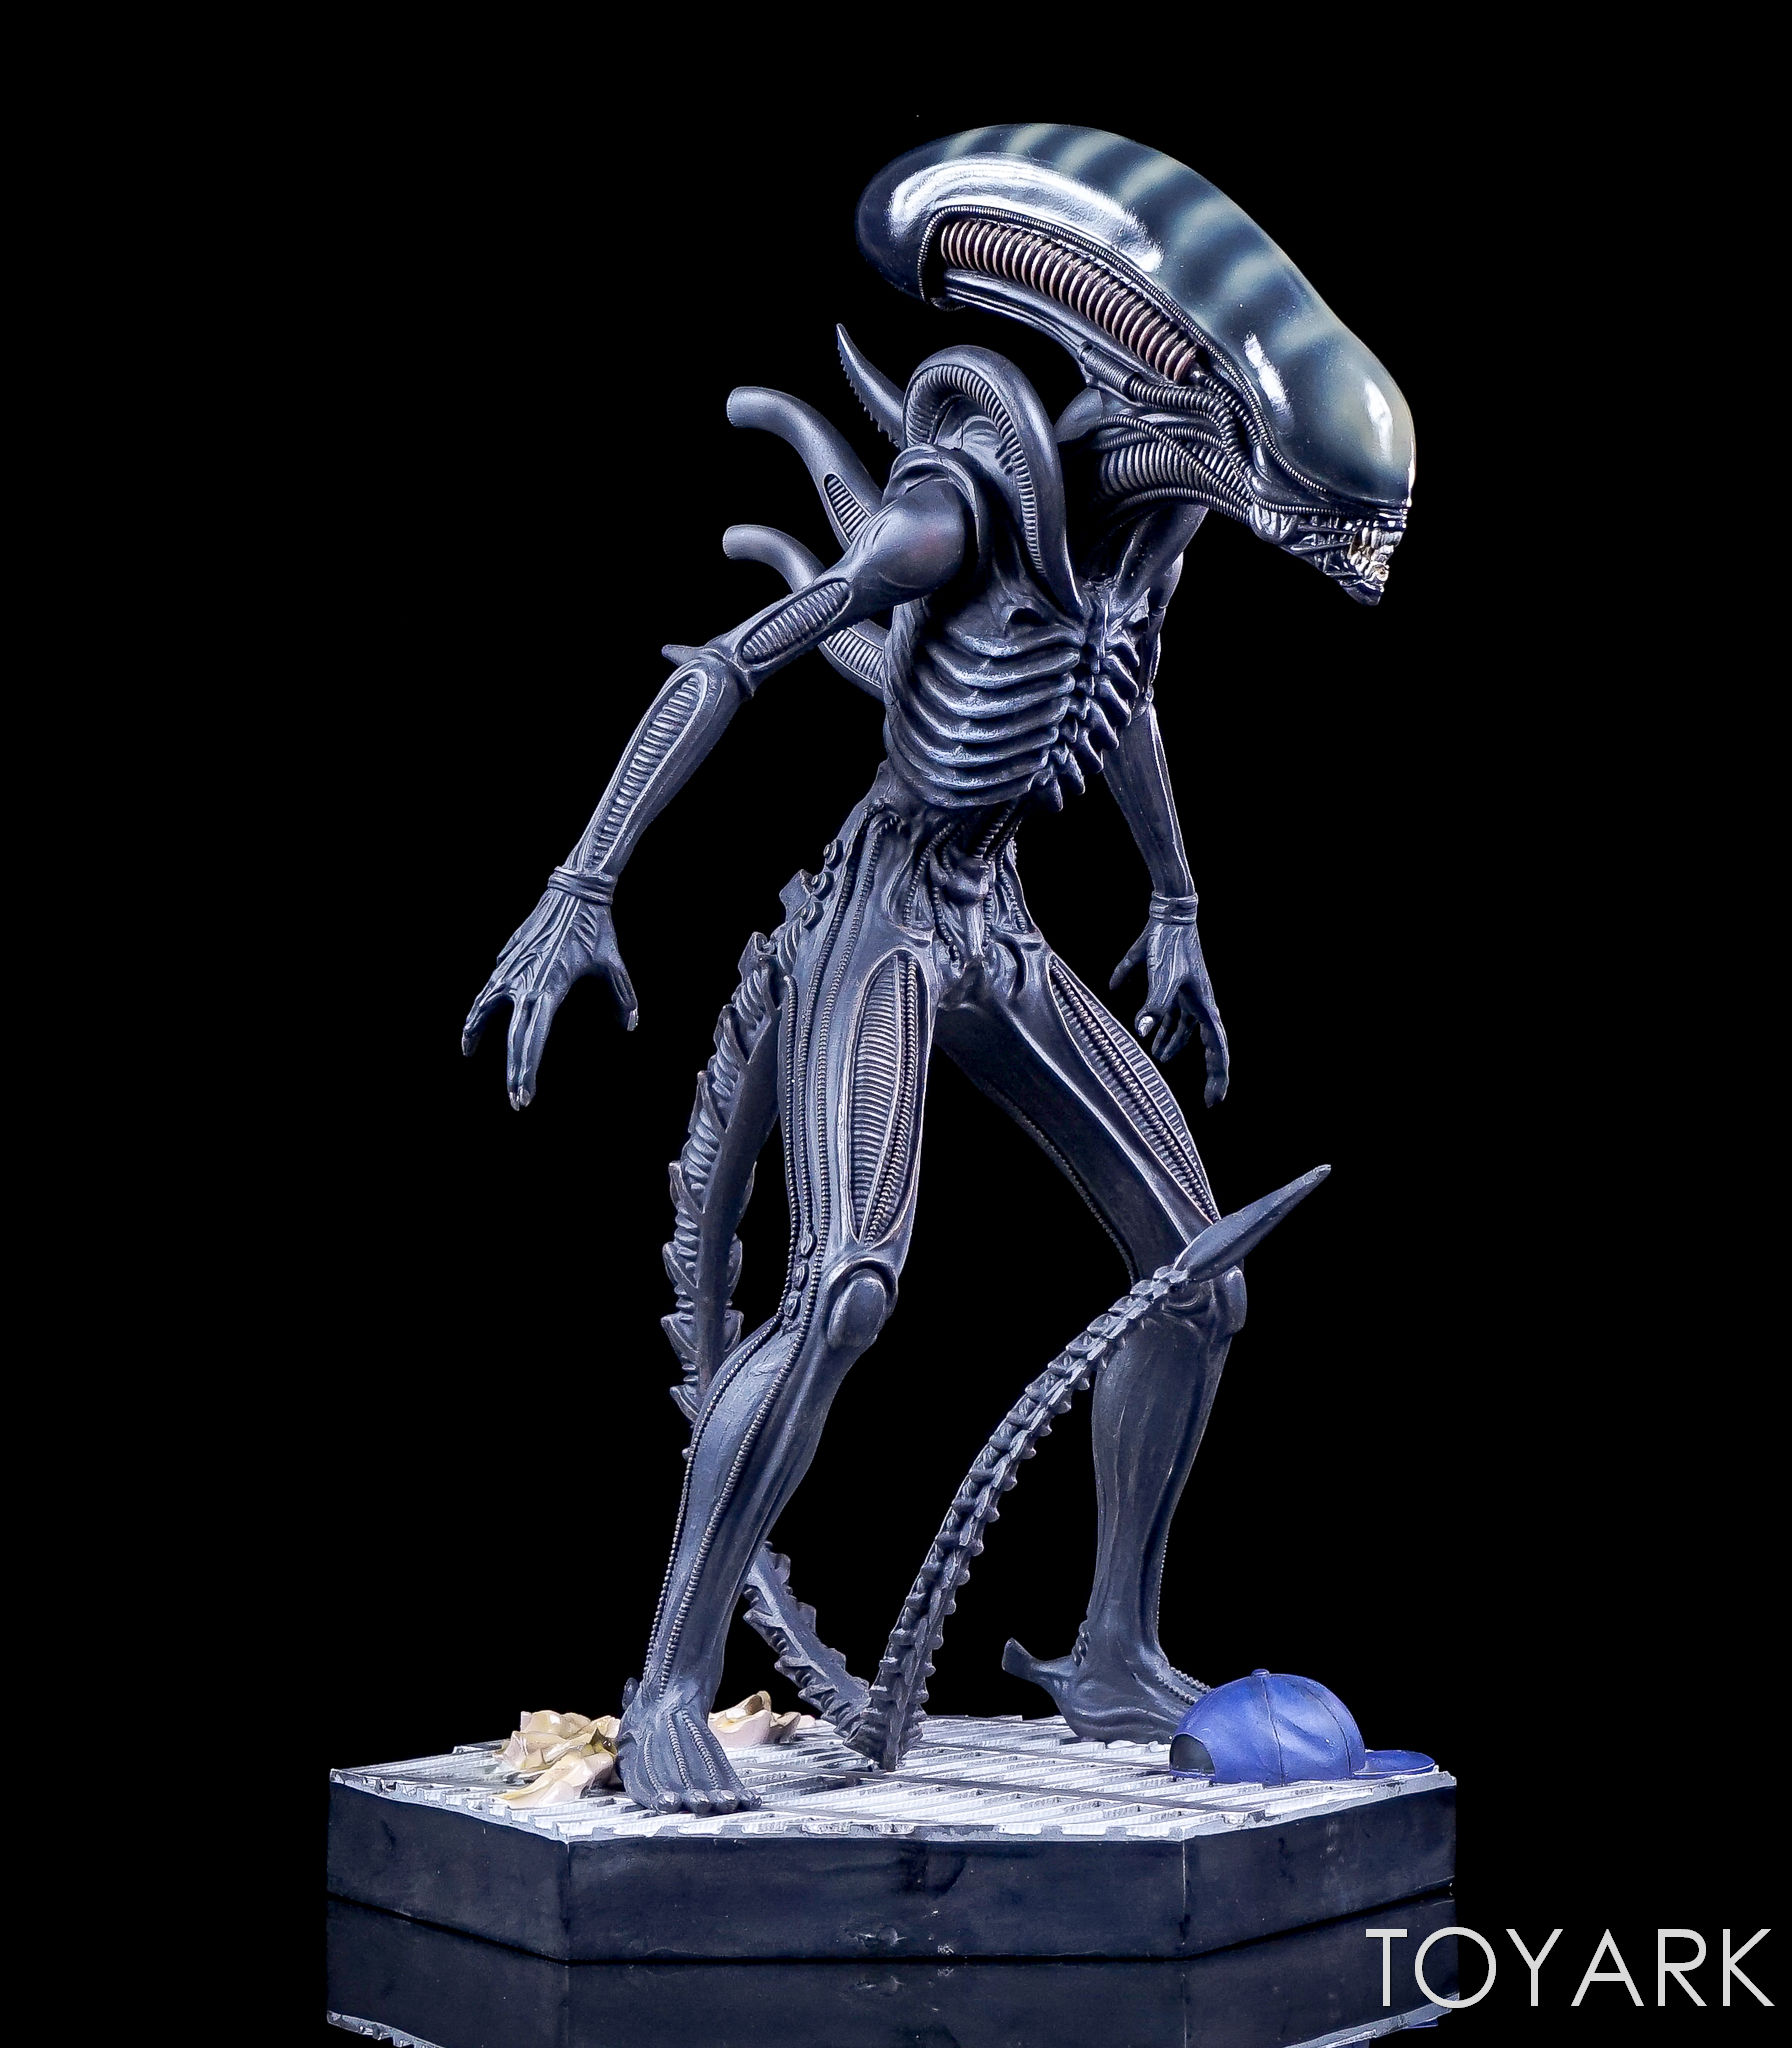 http://news.toyark.com/wp-content/uploads/sites/4/2017/05/Hero-Collector-Mega-Alien-Statue-010.jpg